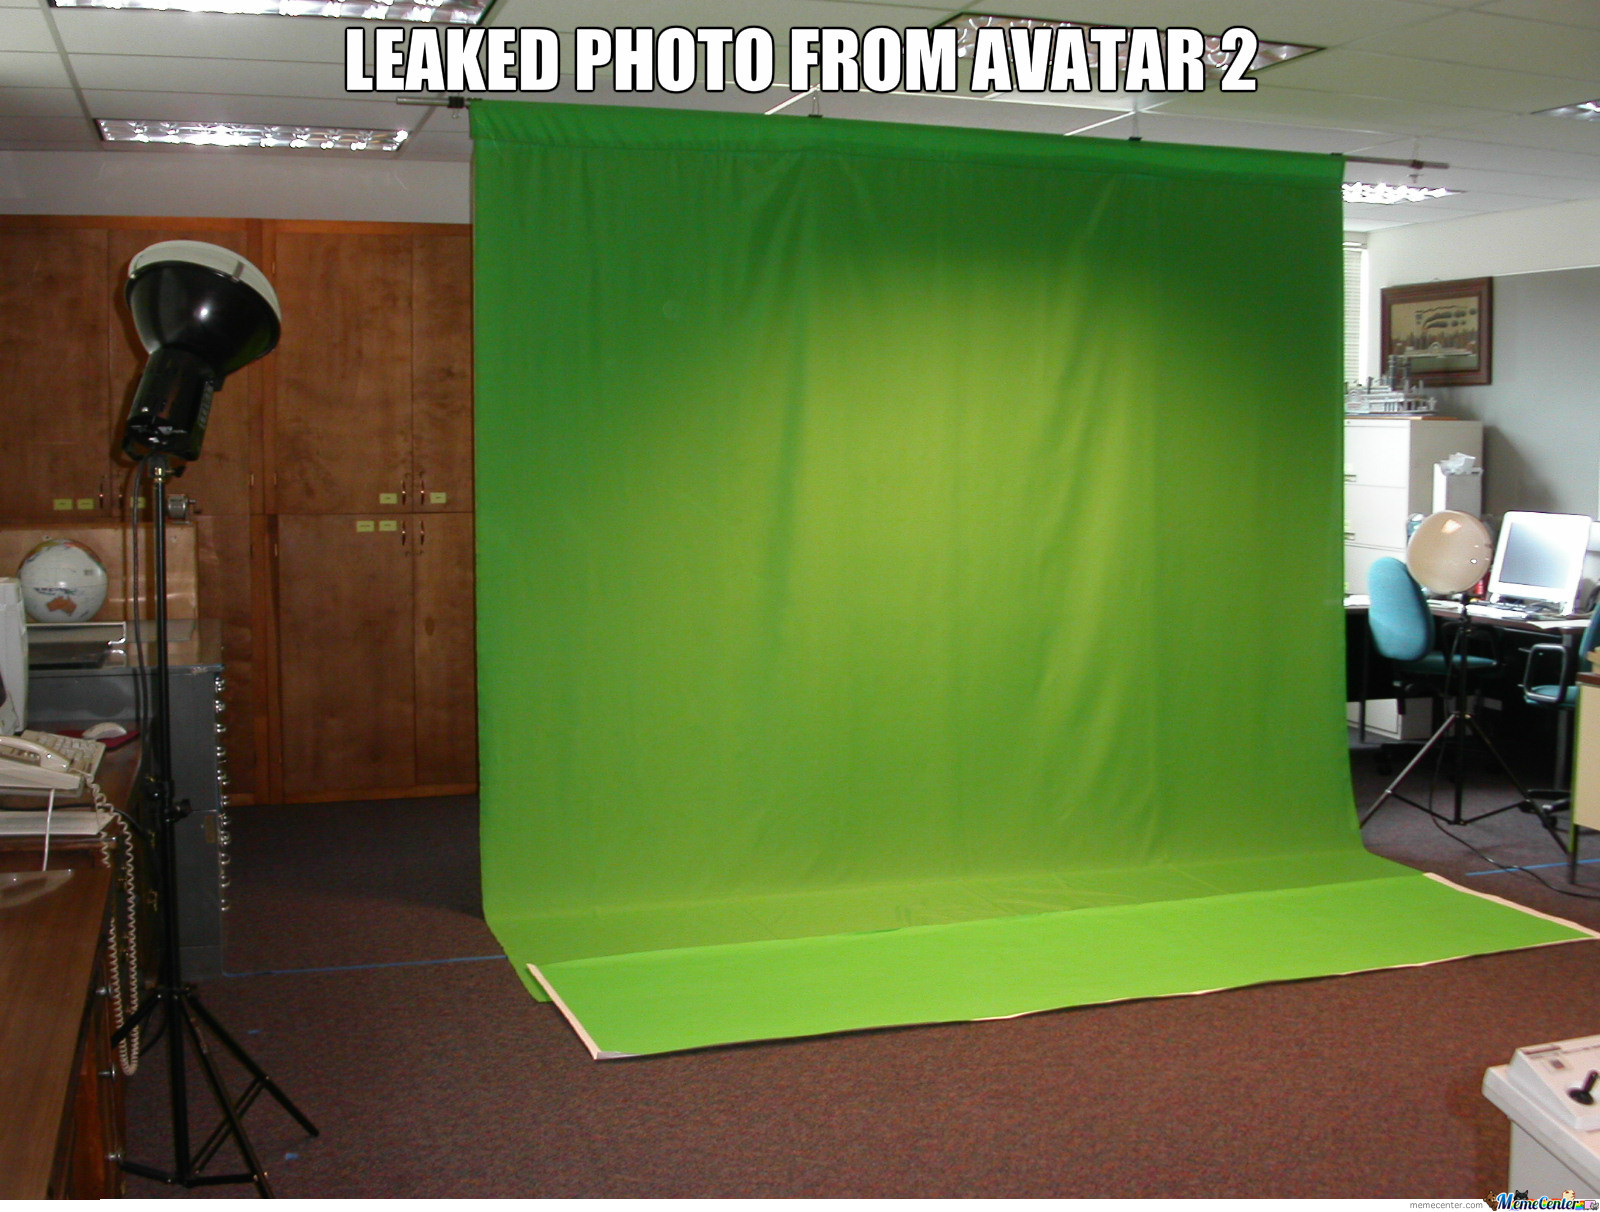 Leaked Image Of The Avatar 2 Set.